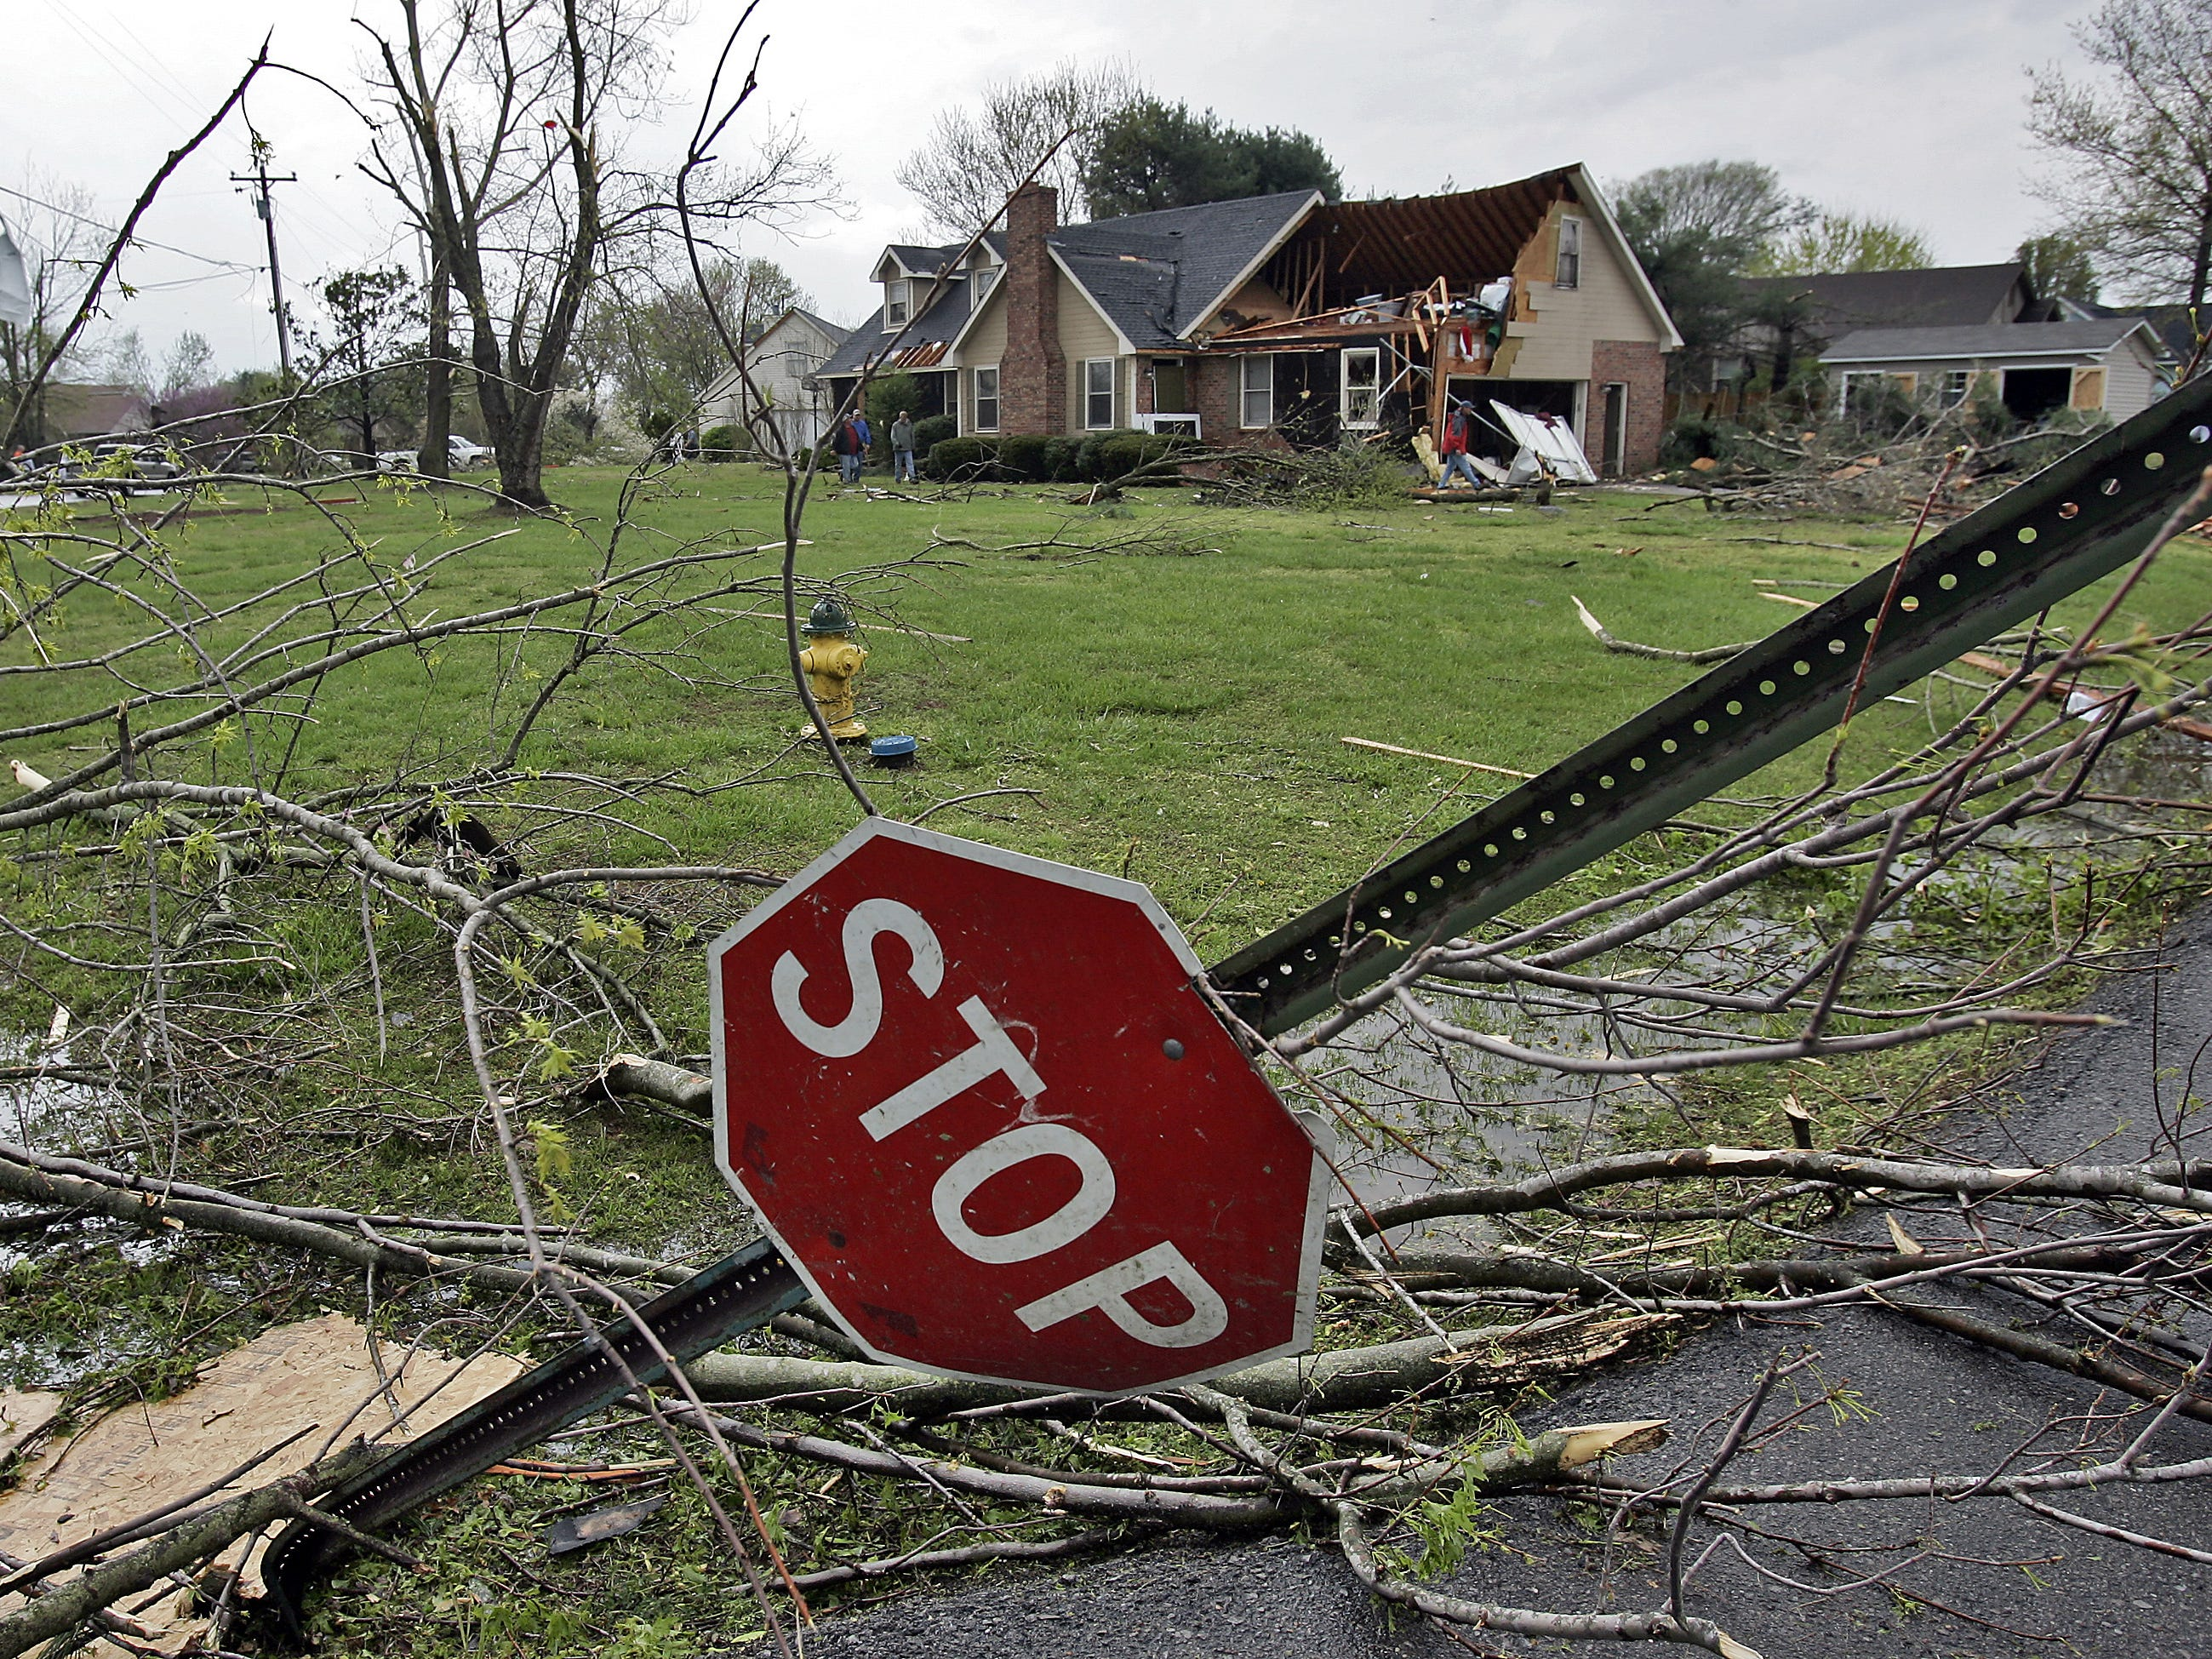 Tornado damages are seen in the Blackman community in Murfreesboro, Tenn., Friday, April 10, 2009. (JAE S. LEE / THE TENNESSEAN)